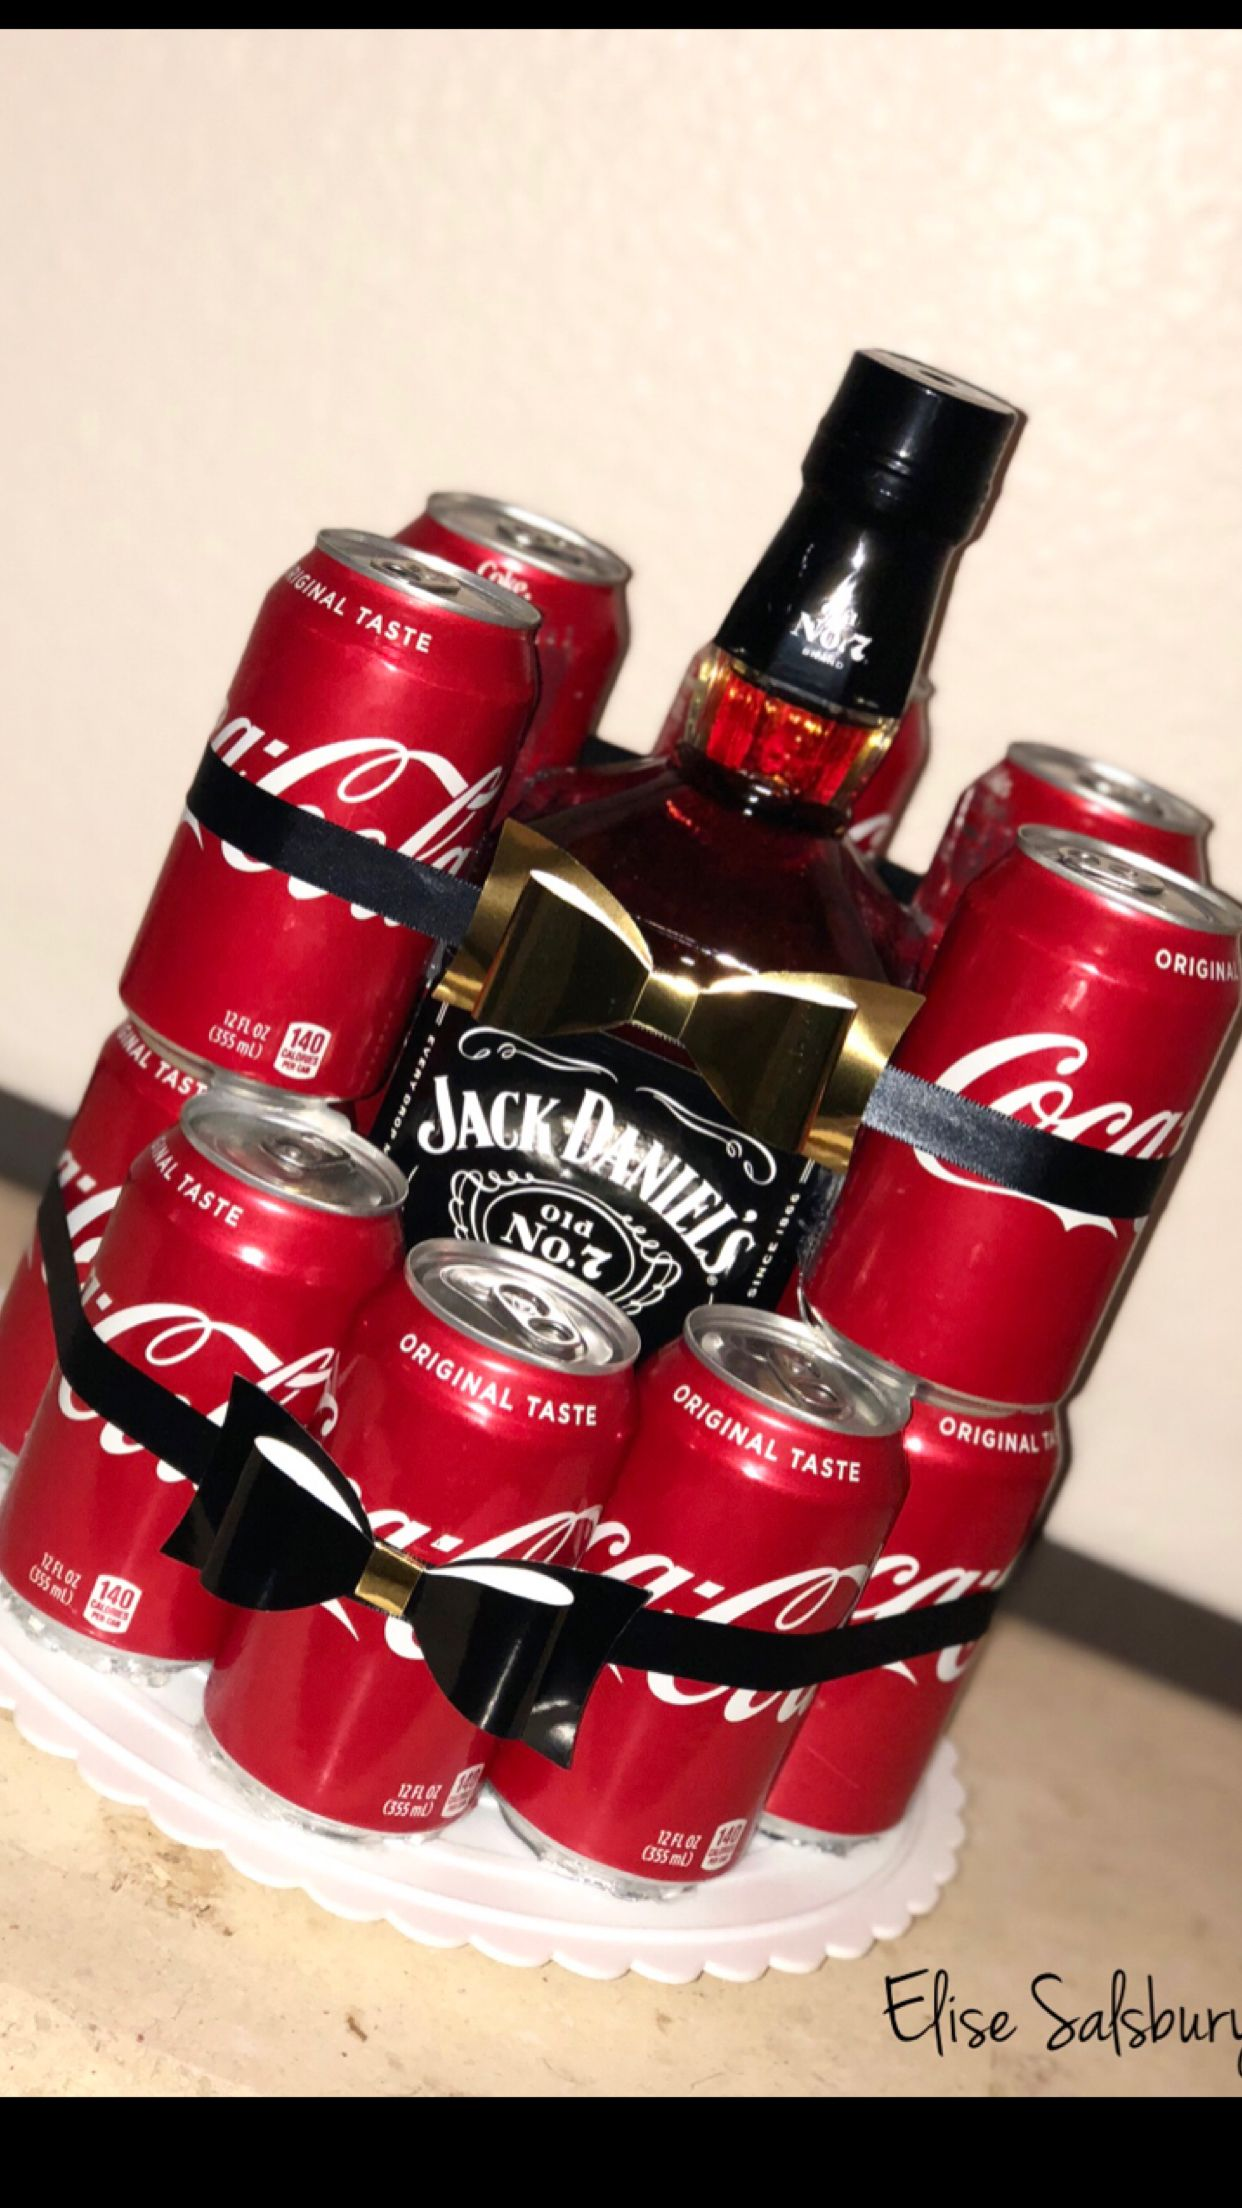 Jack Daniels Birthday Gift Jackandcoke Jackdaniels Sodacake Boozecake Mom Birthday Crafts Jack Daniels Birthday Grandpa Birthday Gifts